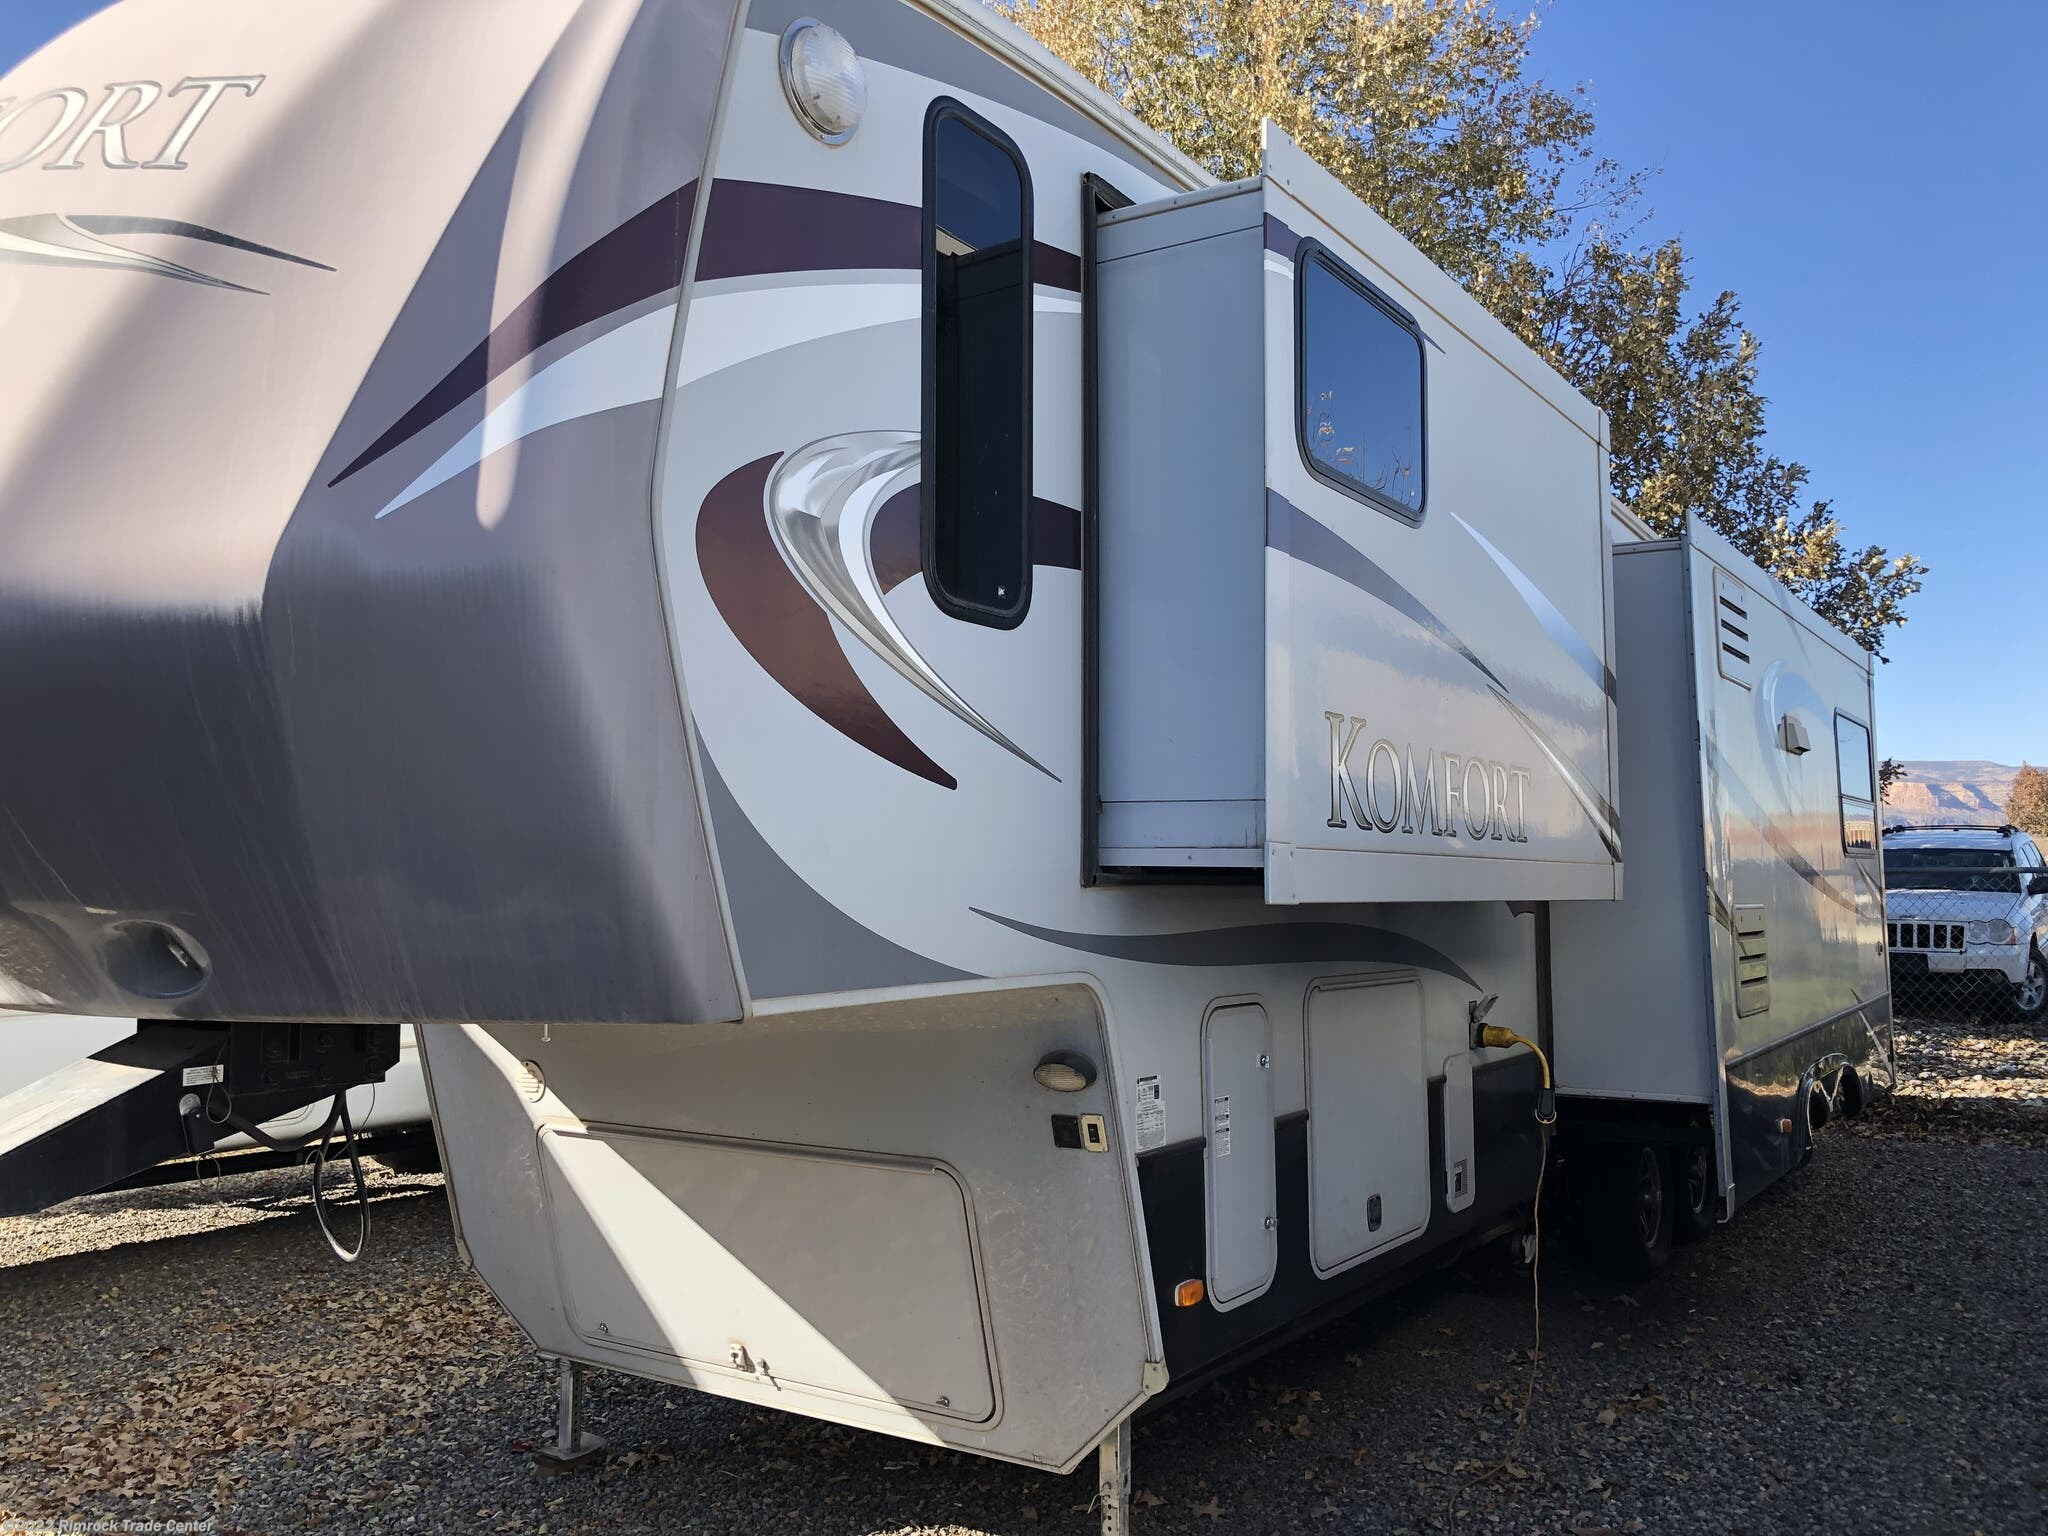 2012 Thor Komfort 3130 RV for Sale in Grand Junction, CO 81505 | P1662 |  RVUSA.com Classifieds